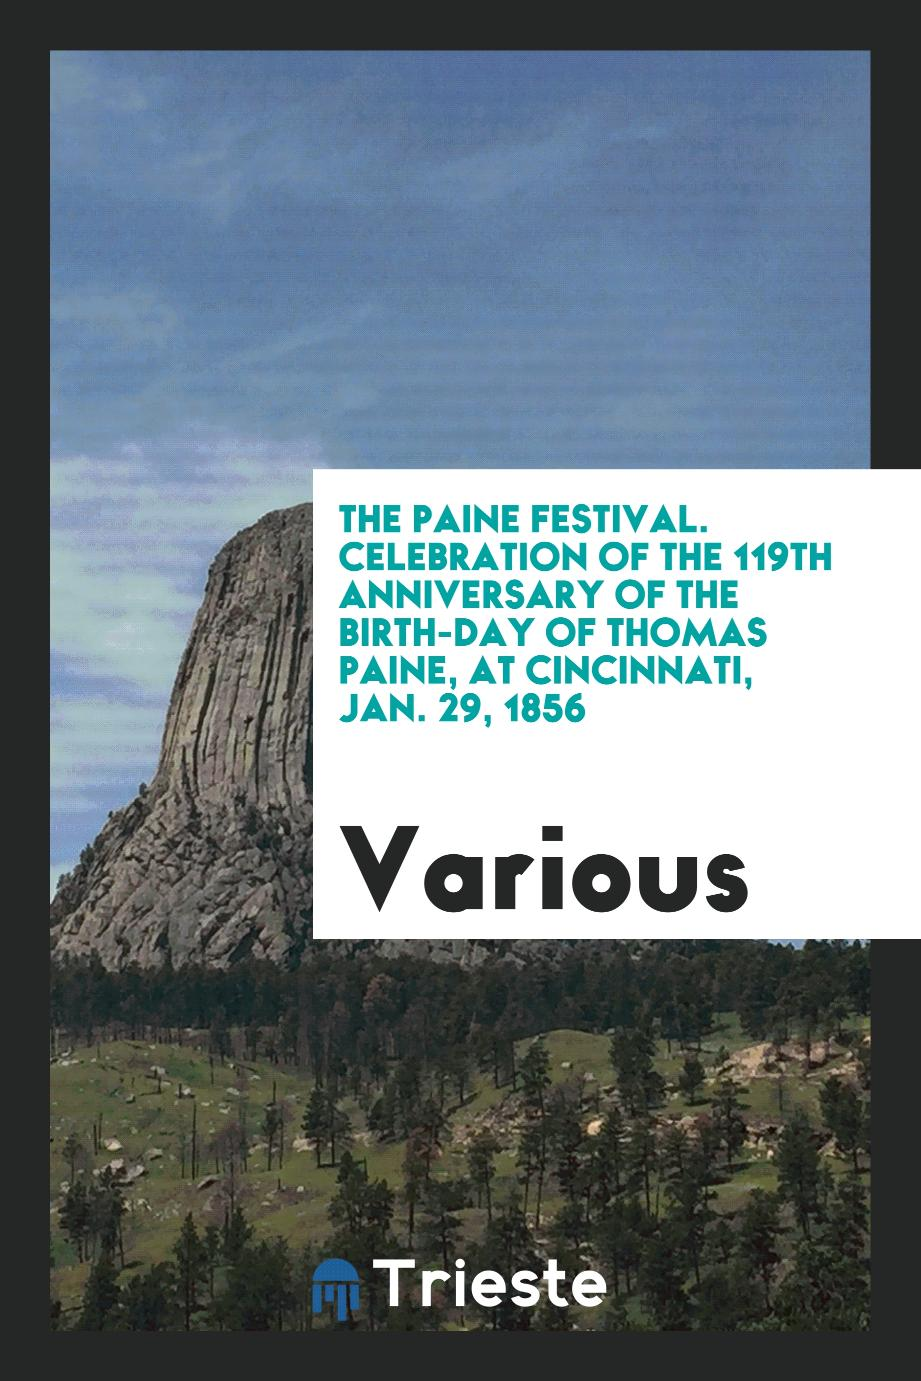 The Paine festival. Celebration of the 119th anniversary of the birth-day of Thomas Paine, at Cincinnati, Jan. 29, 1856